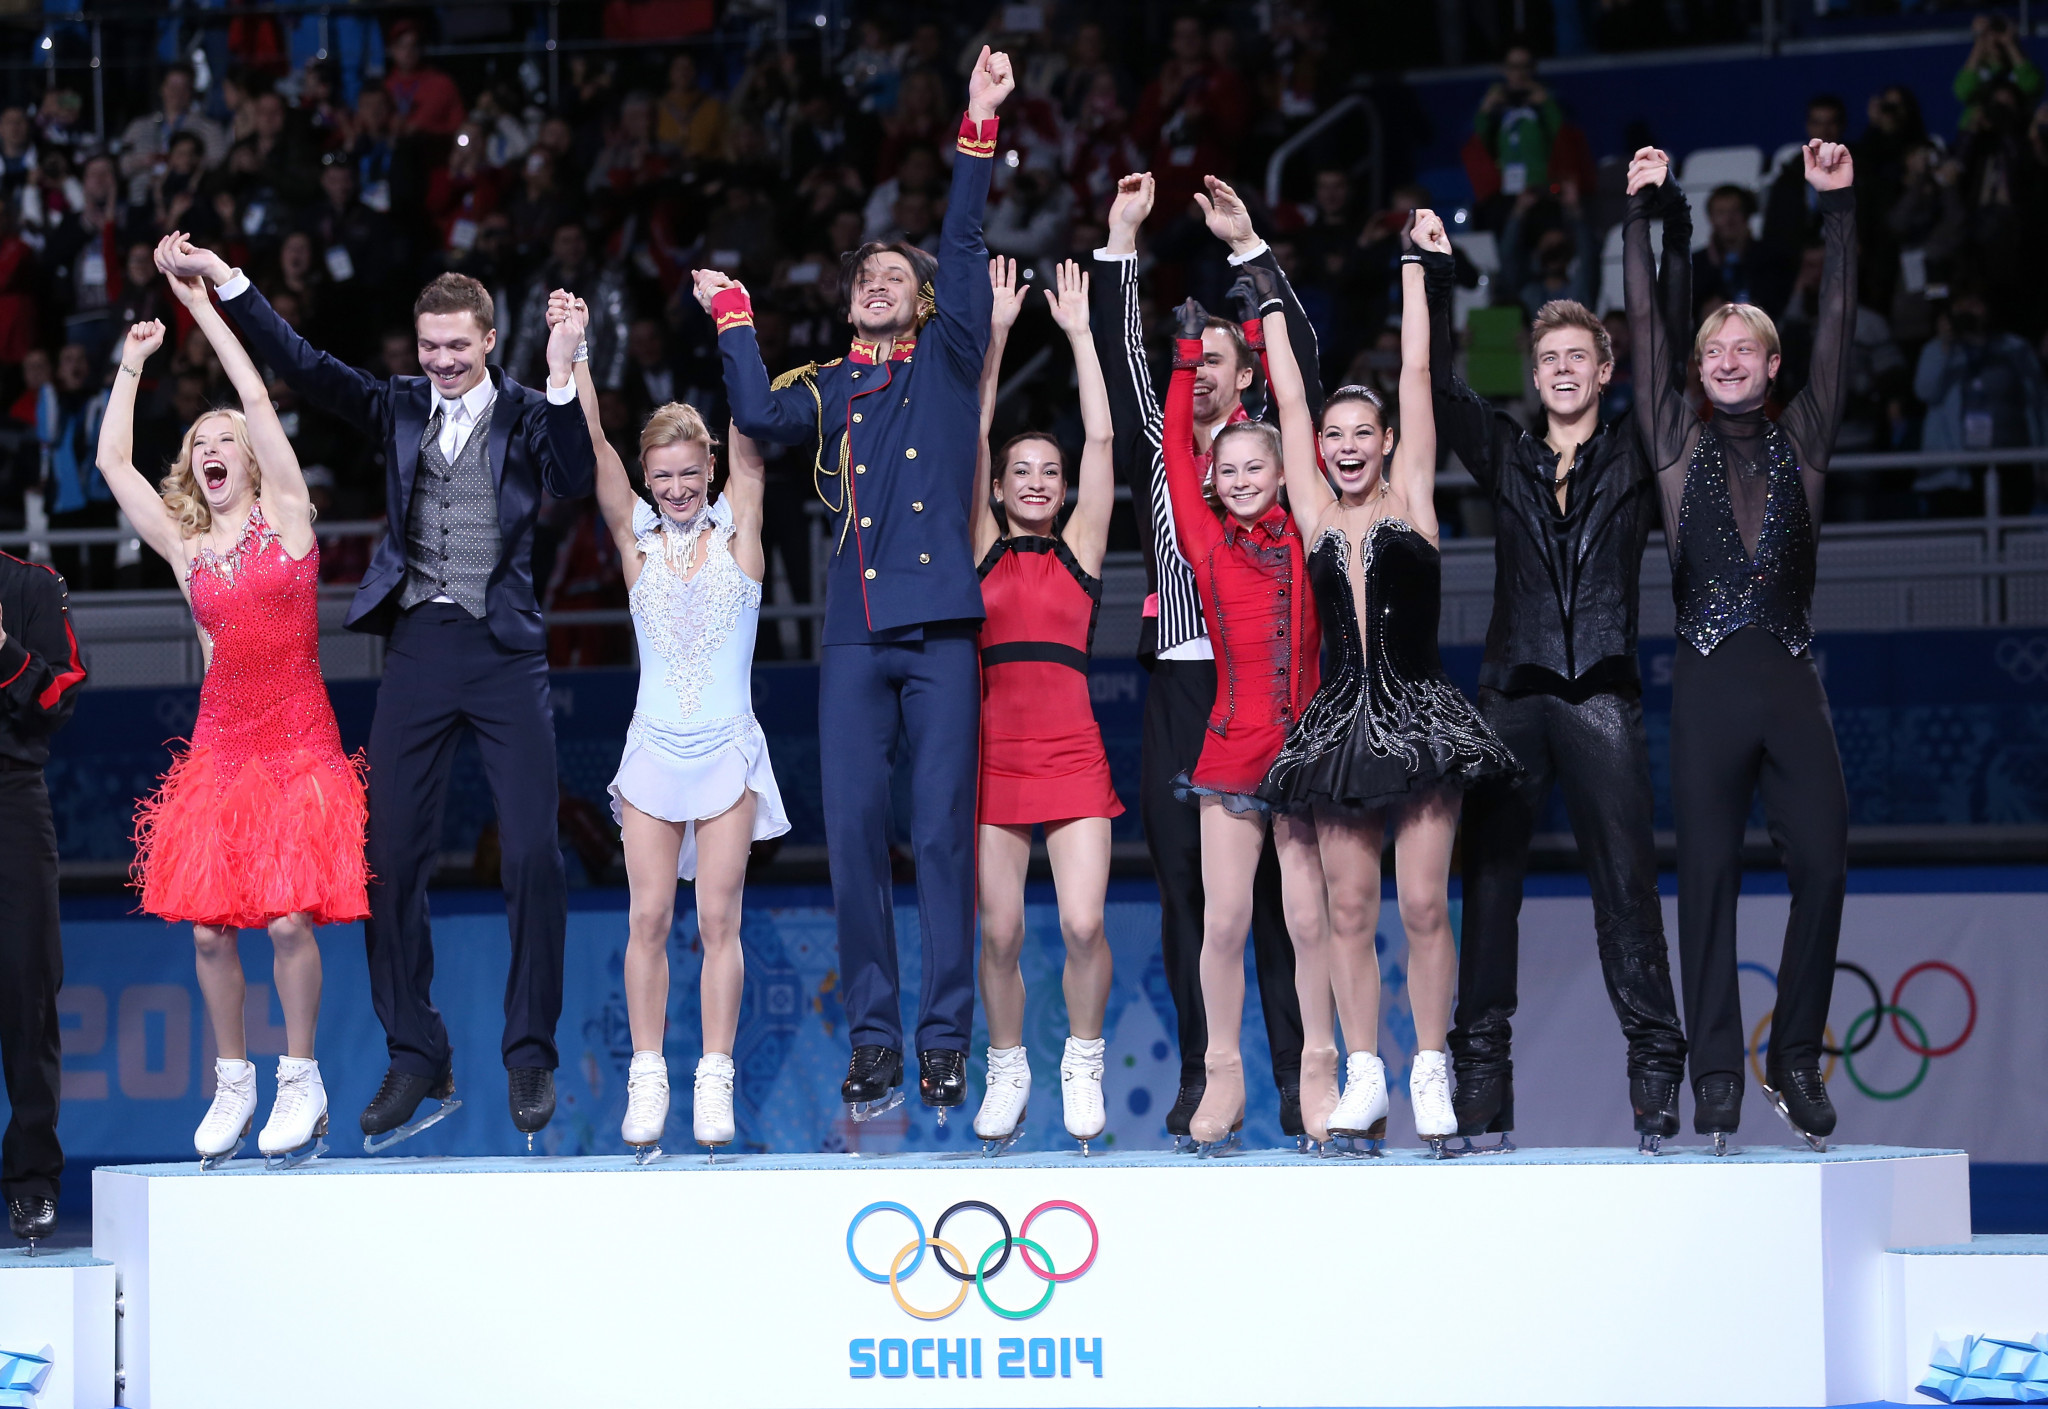 Ekaterina Bobrova, left, was part of Russia's gold medal-winning figure skating team at the Sochi 2014 Winter Olympic Games ©Getty Images